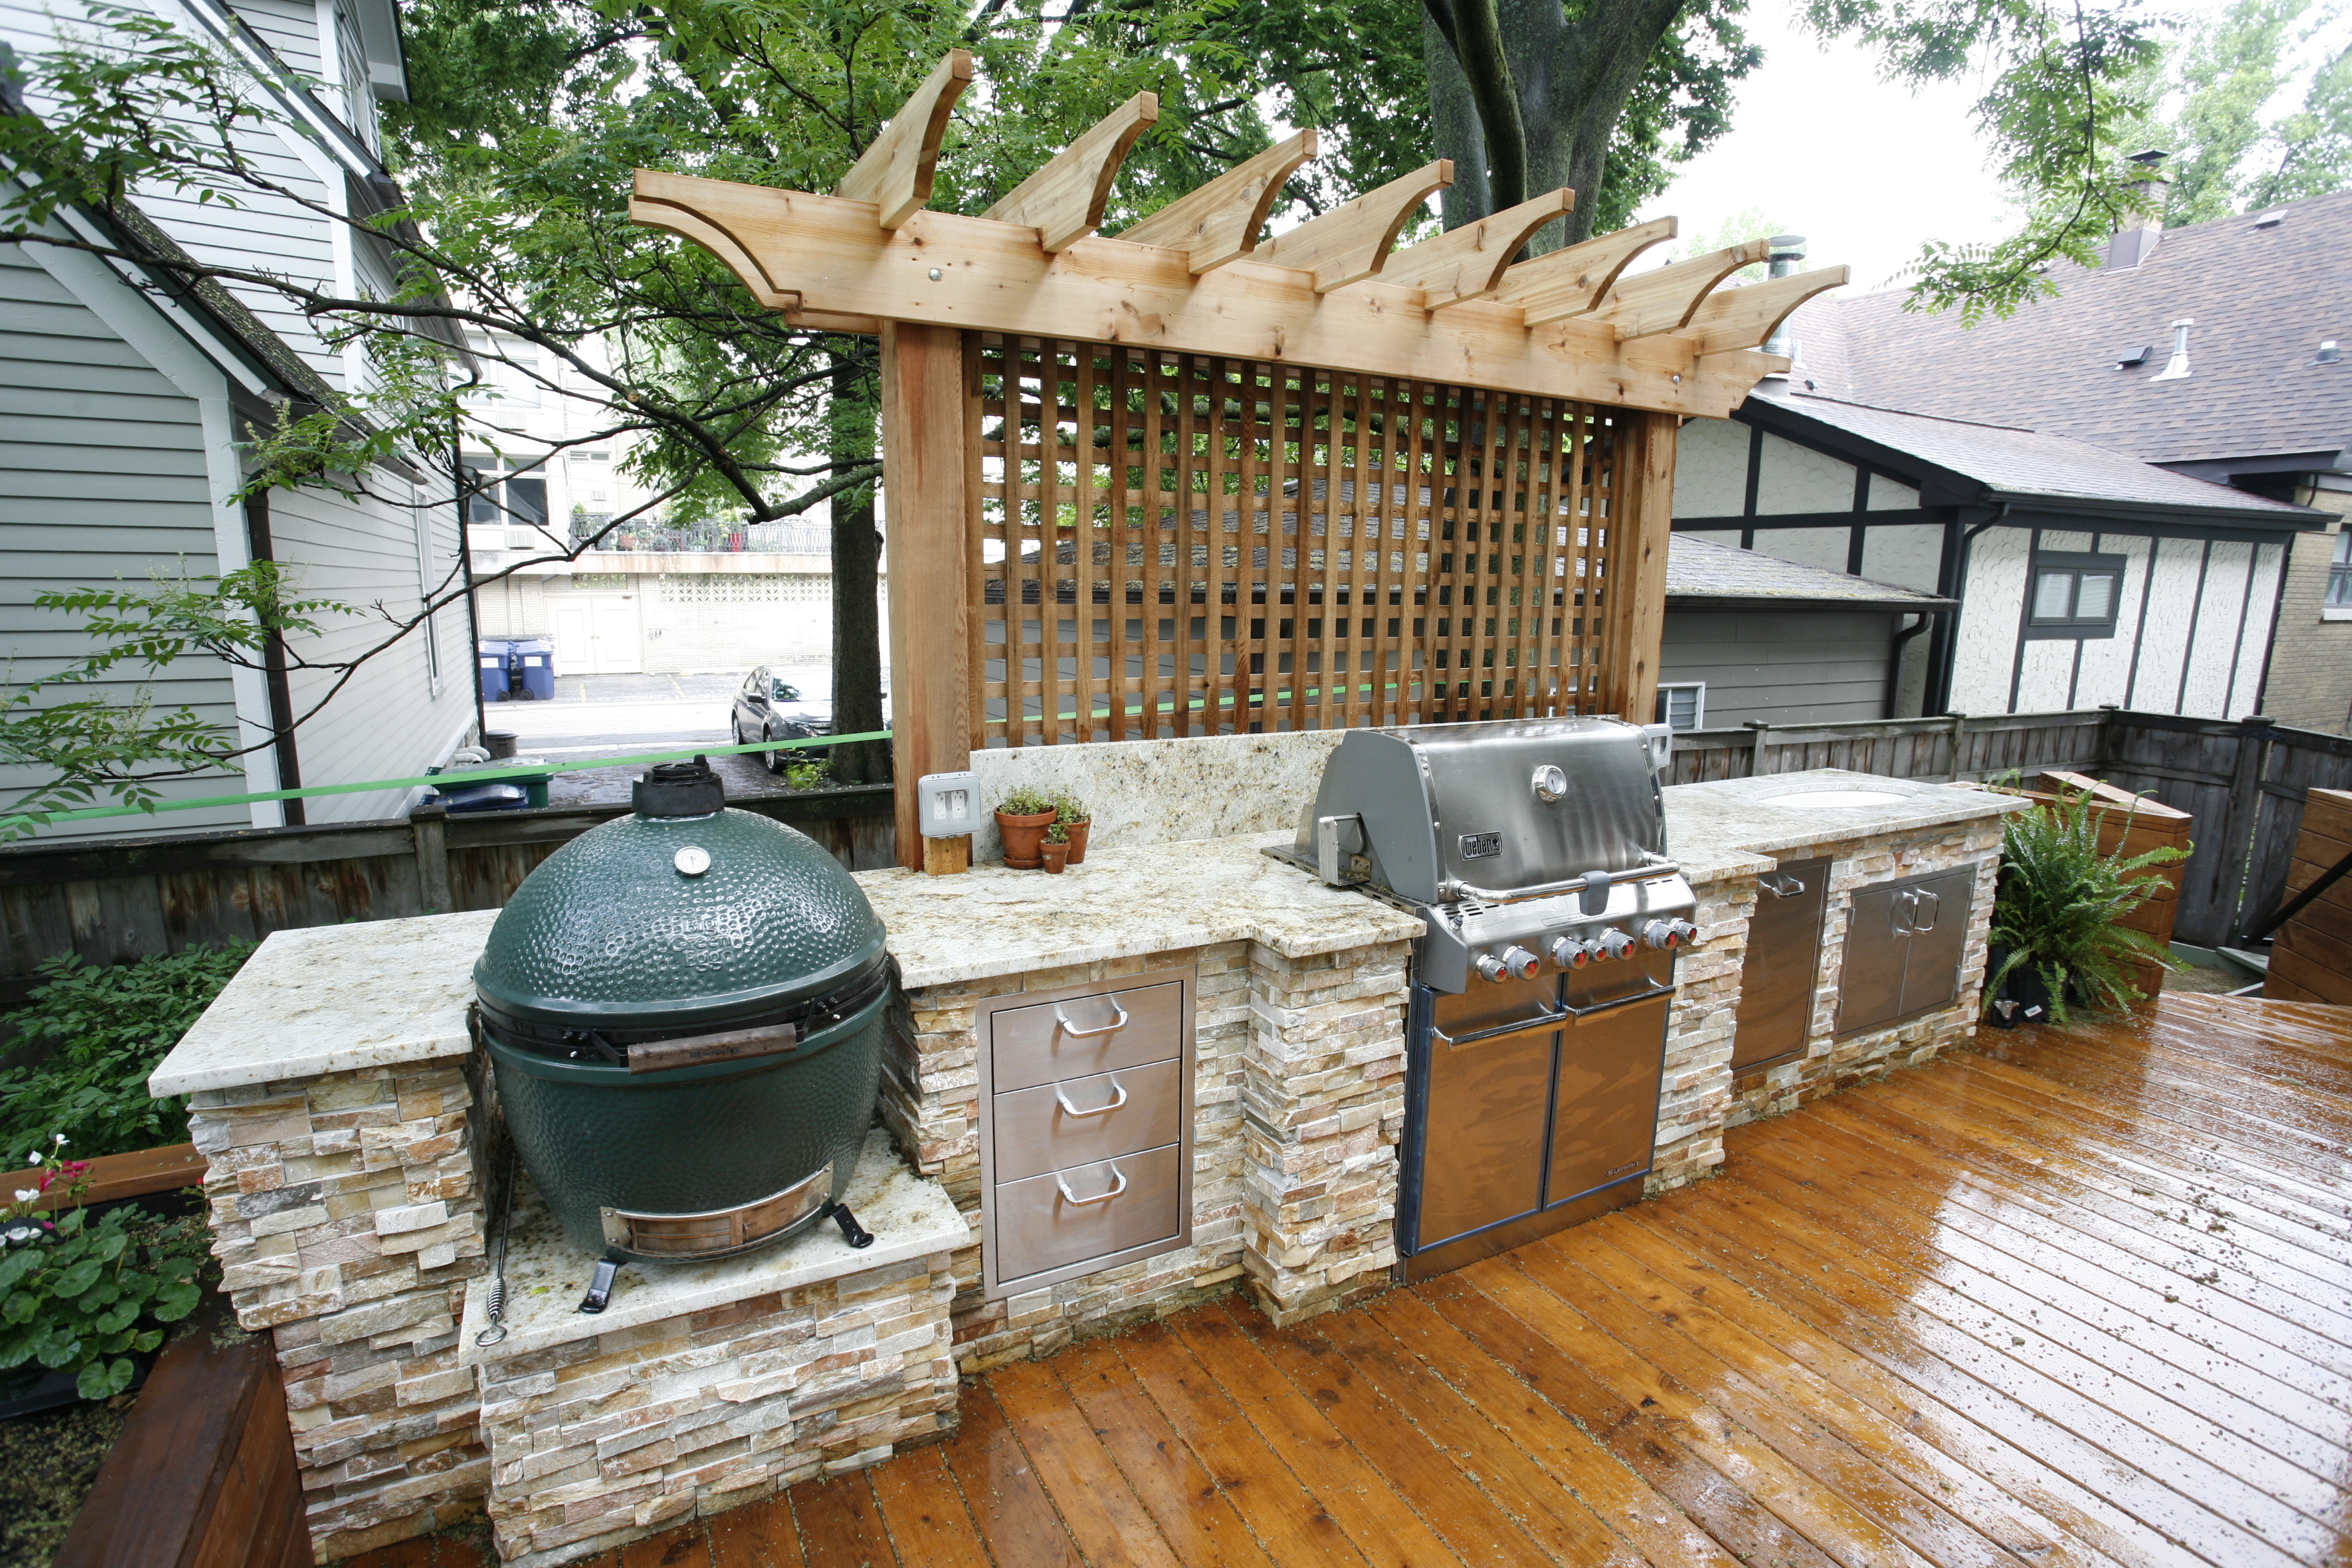 Chef's kitchen, outdoor grill